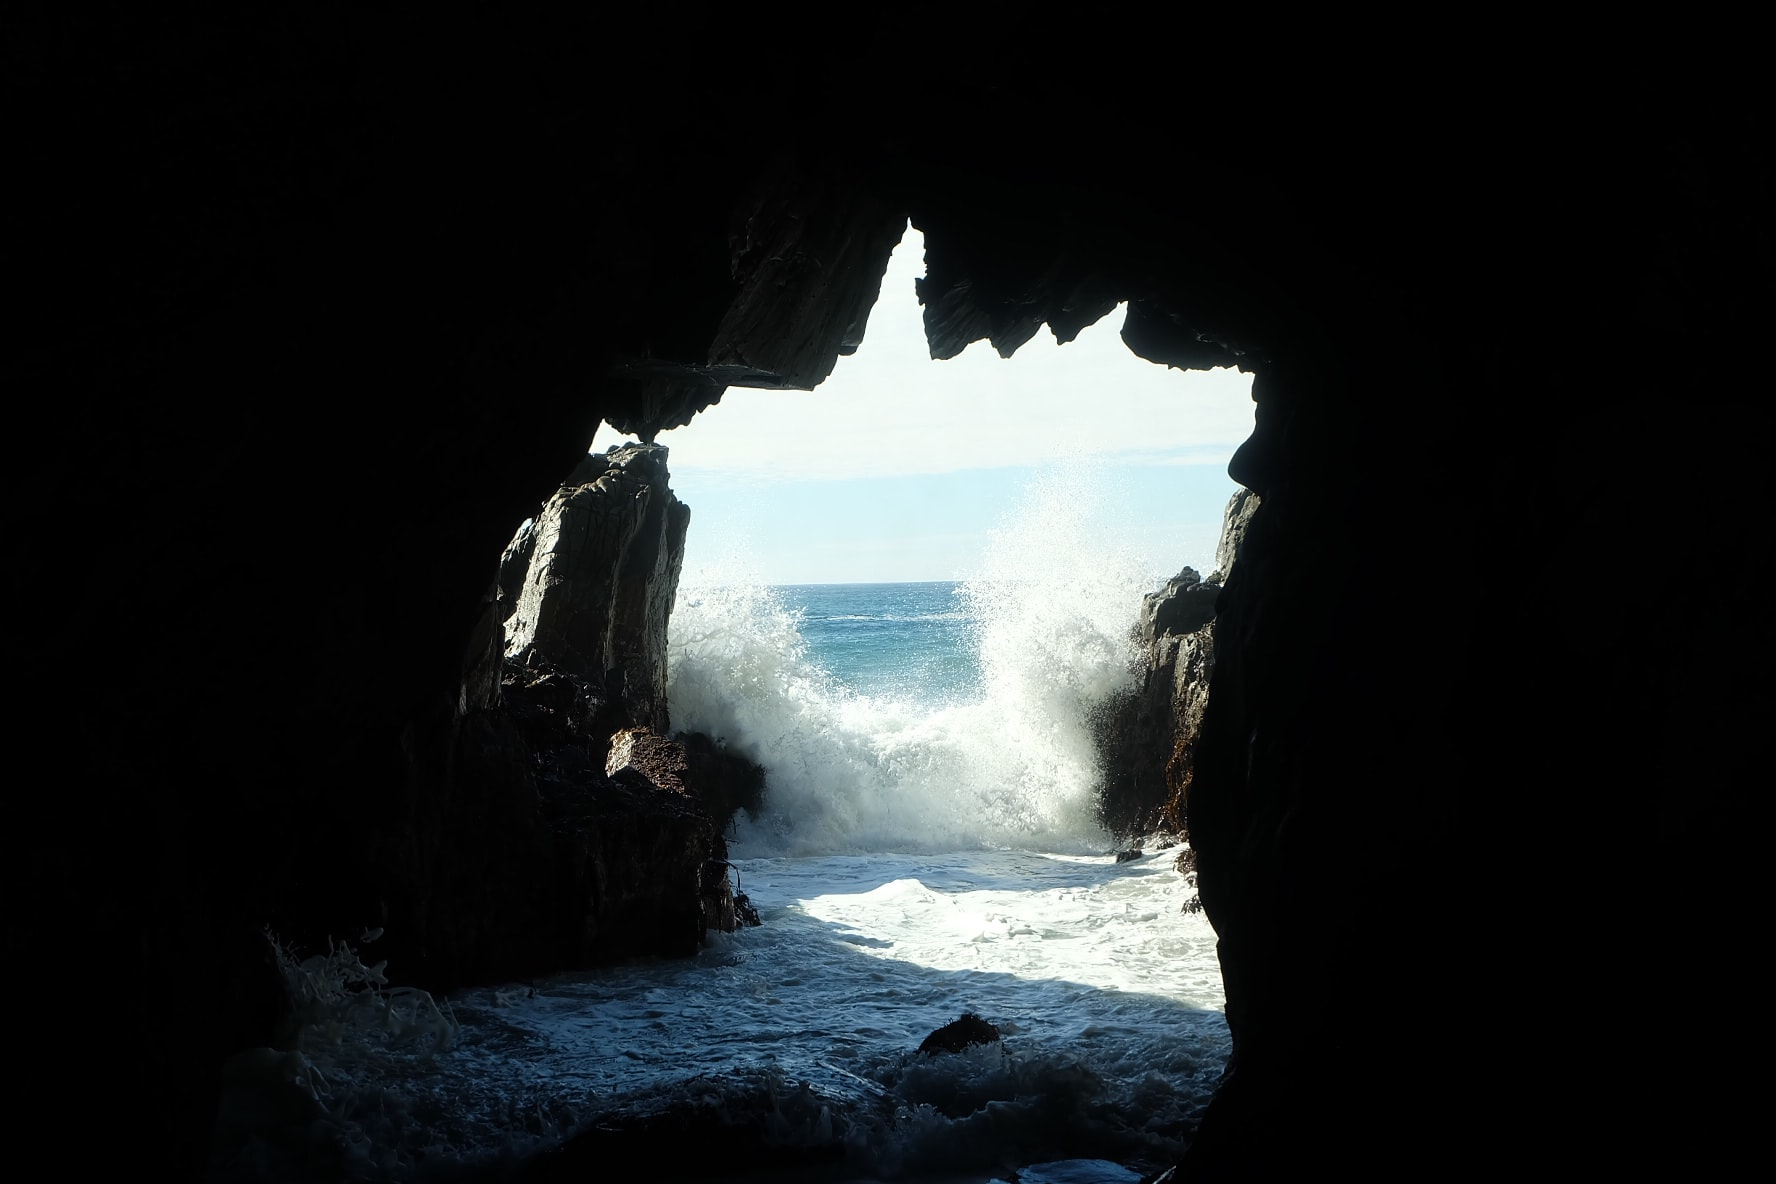 Sea waves splashing at the entrance to a dark sea cave